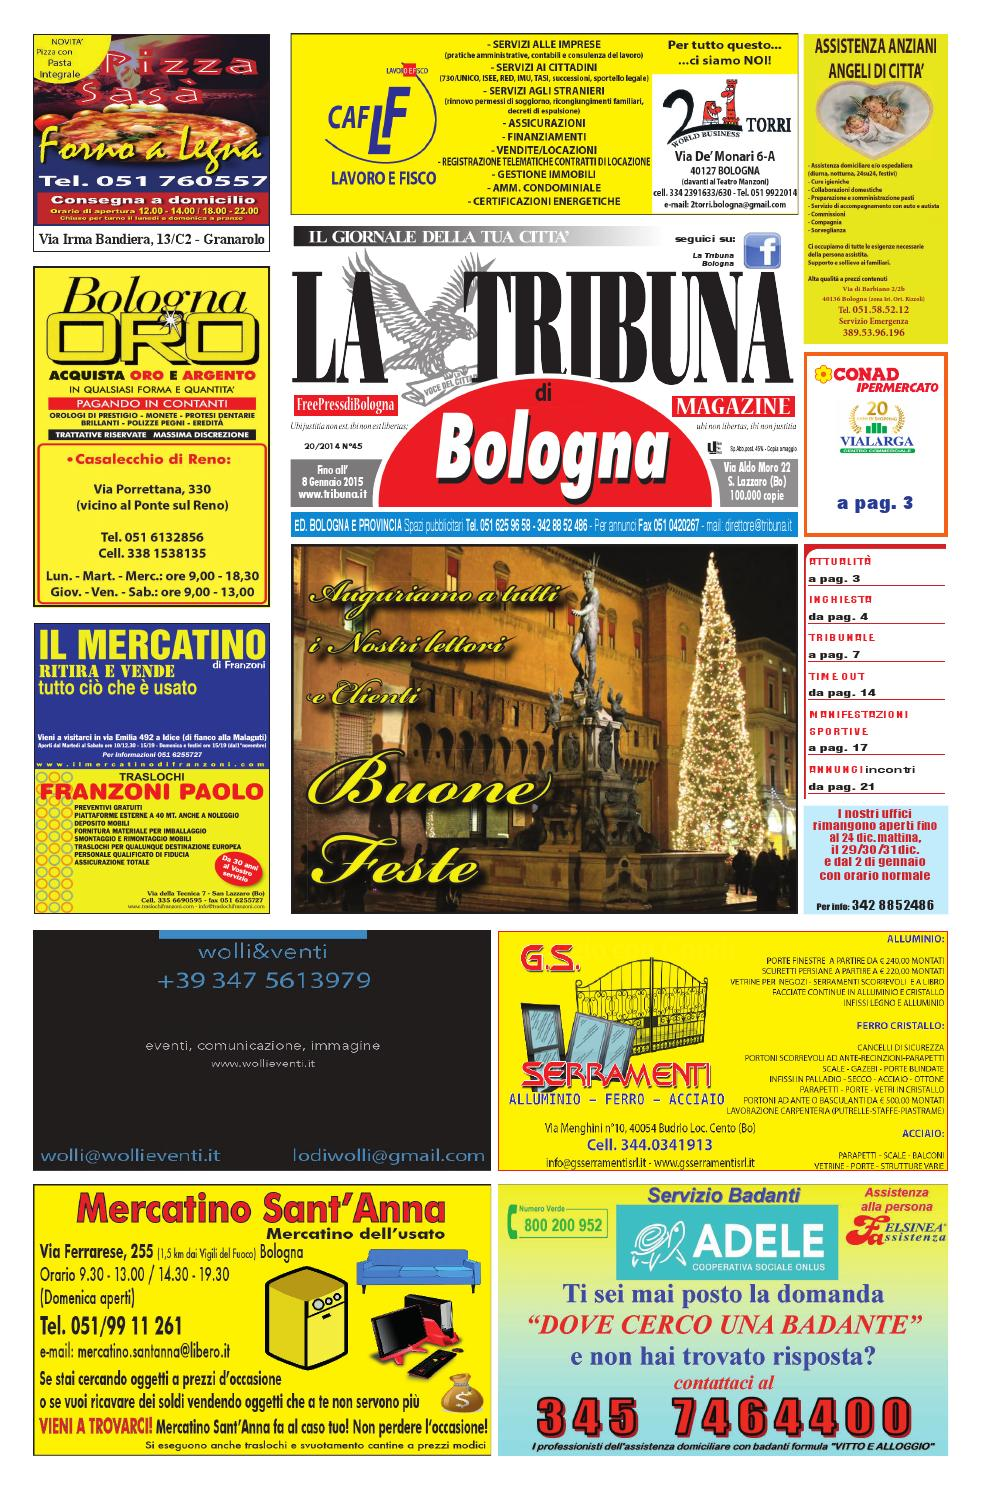 45 Tribuna Dic '14 Gen '15 by La Tribuna srls issuu